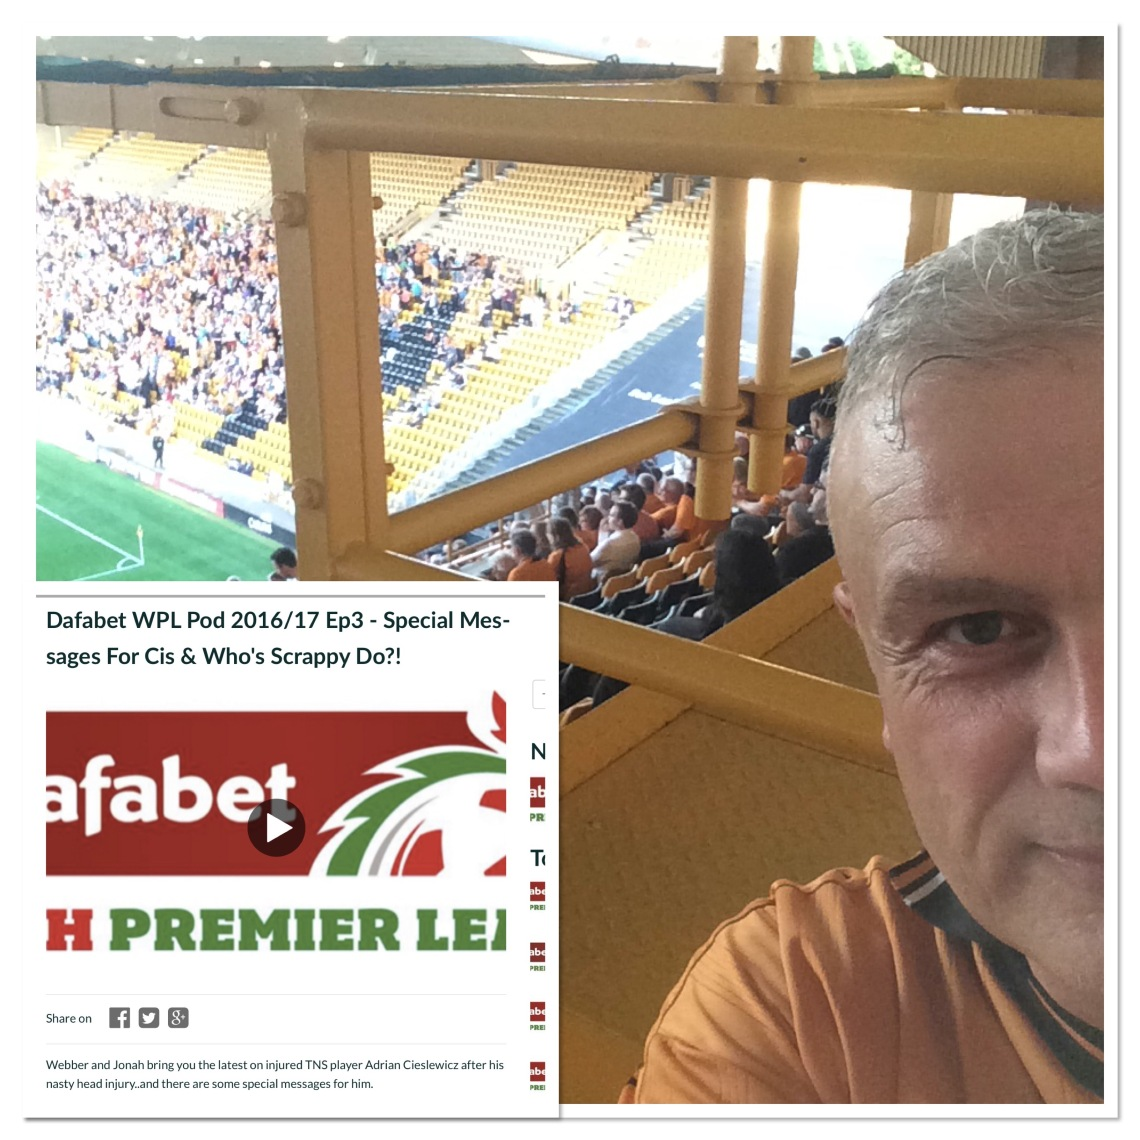 Back at Molineux and back on the WPL podcast